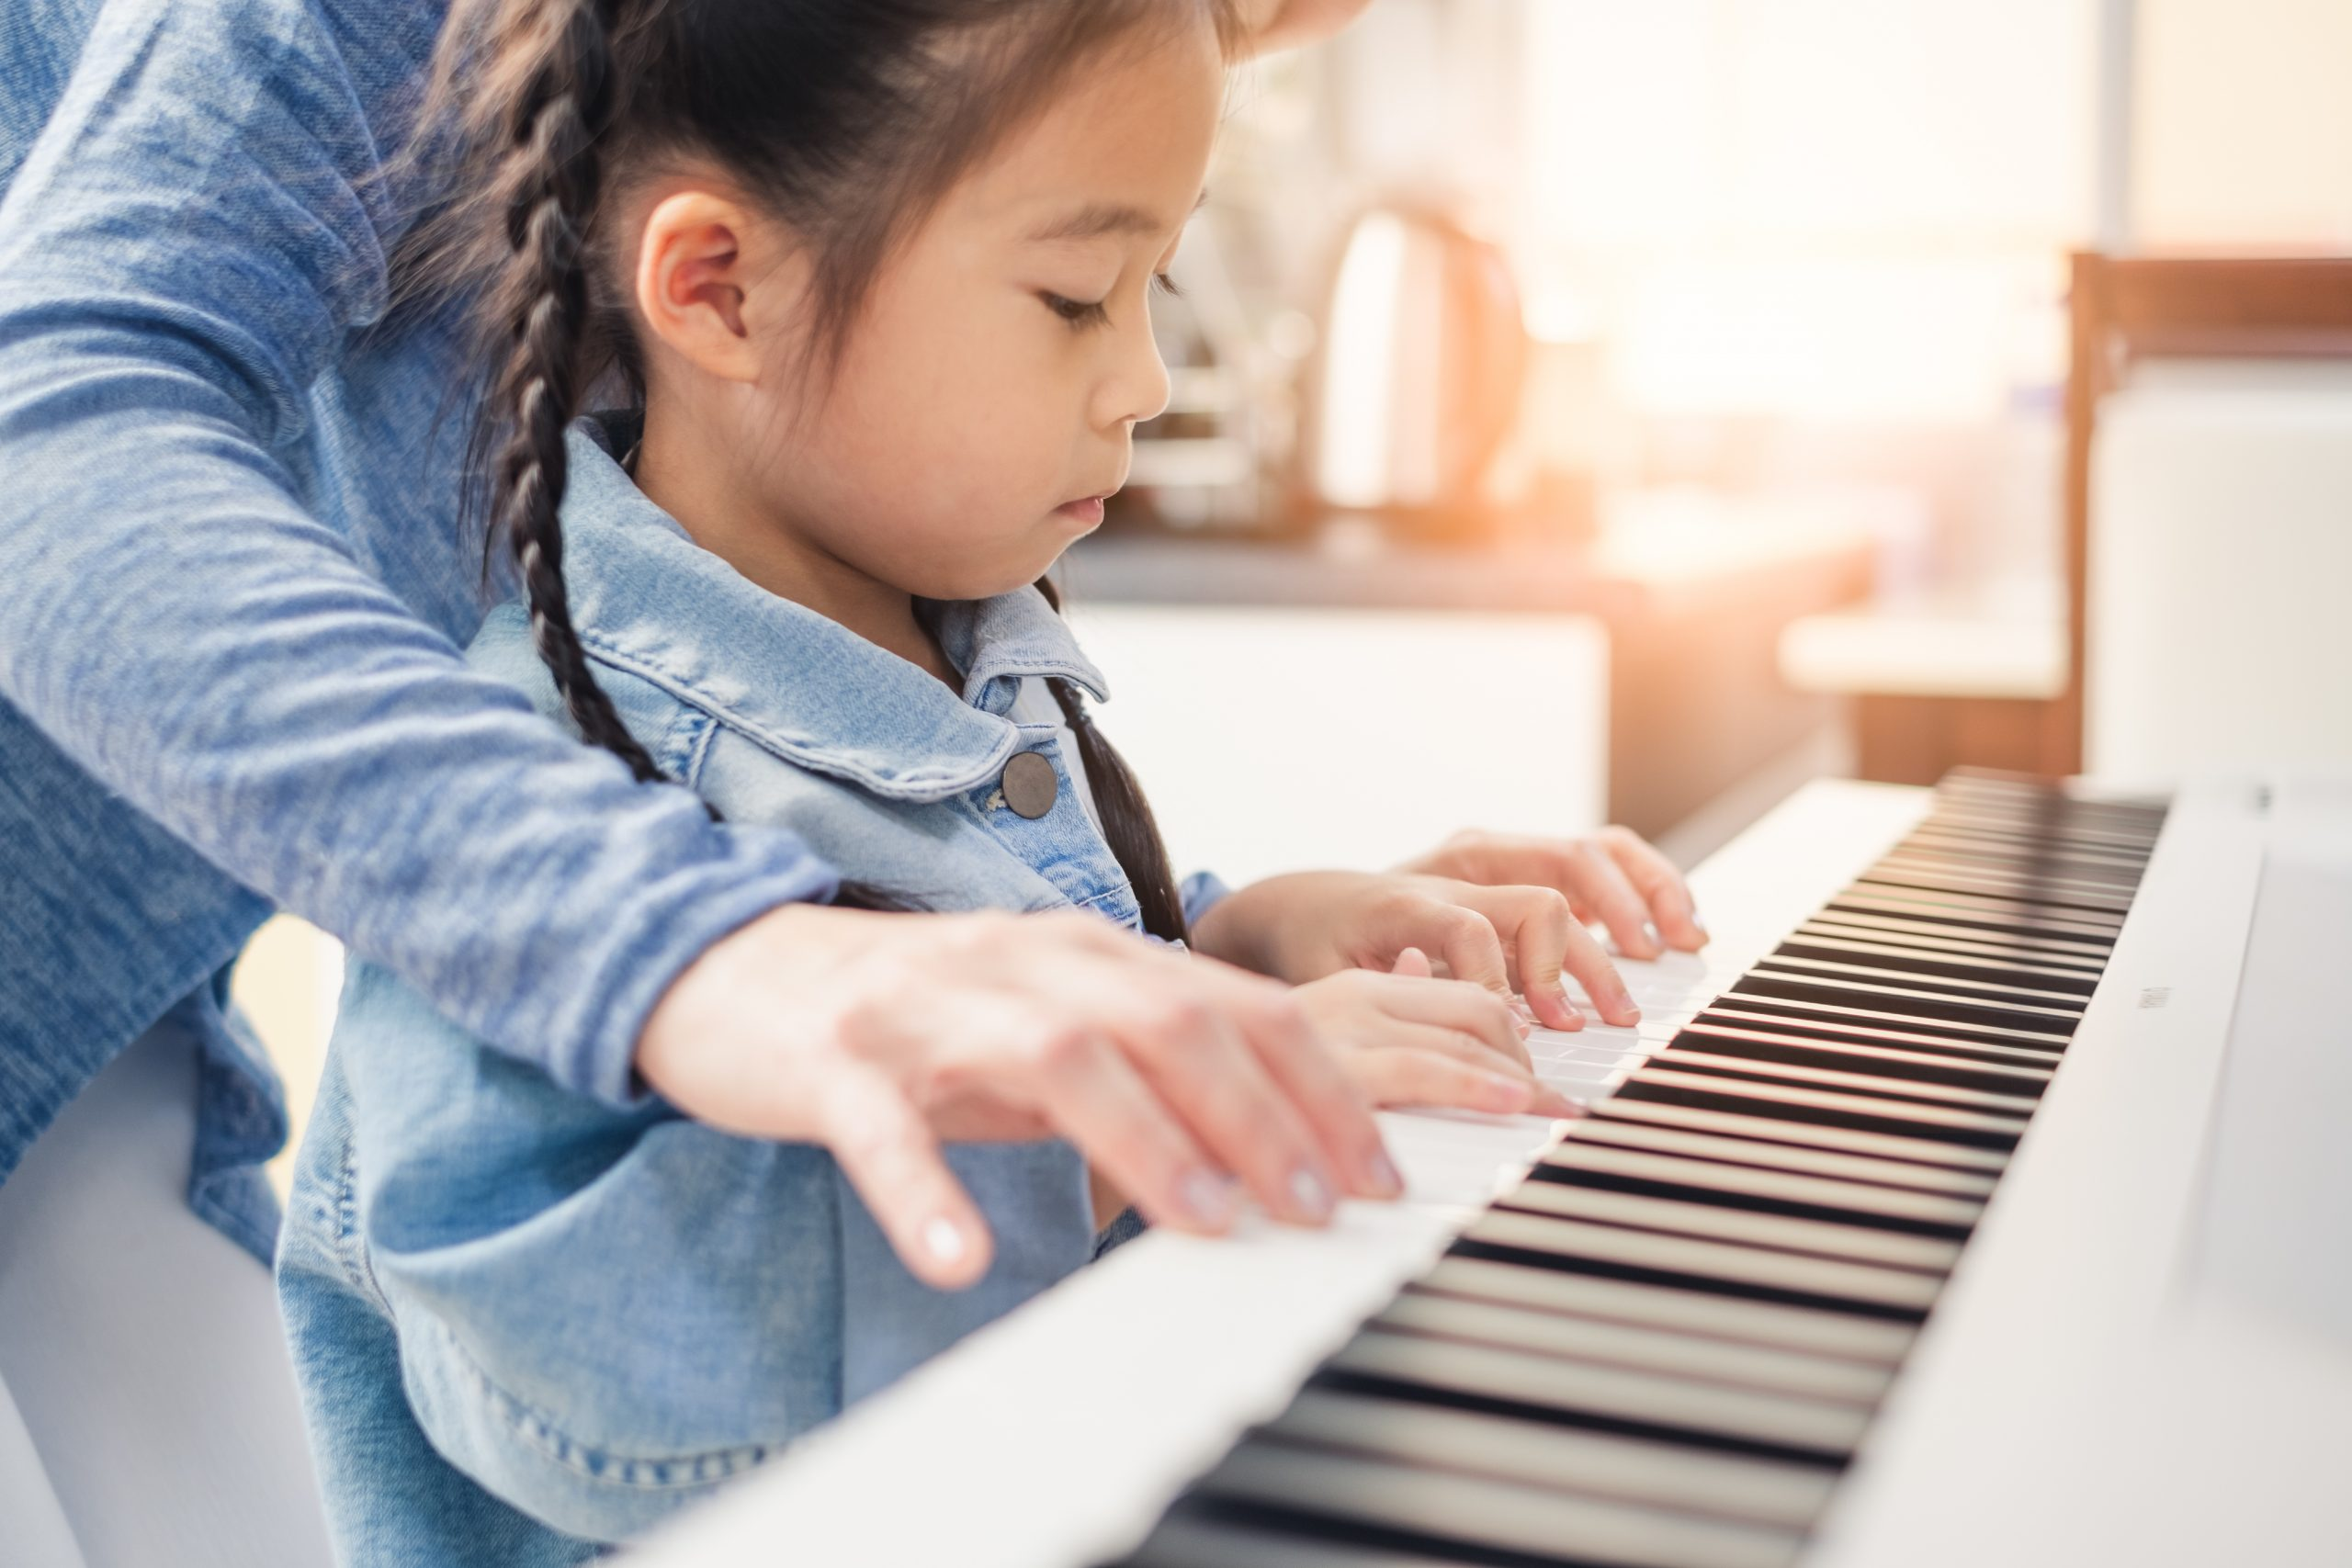 Your first piano lessons